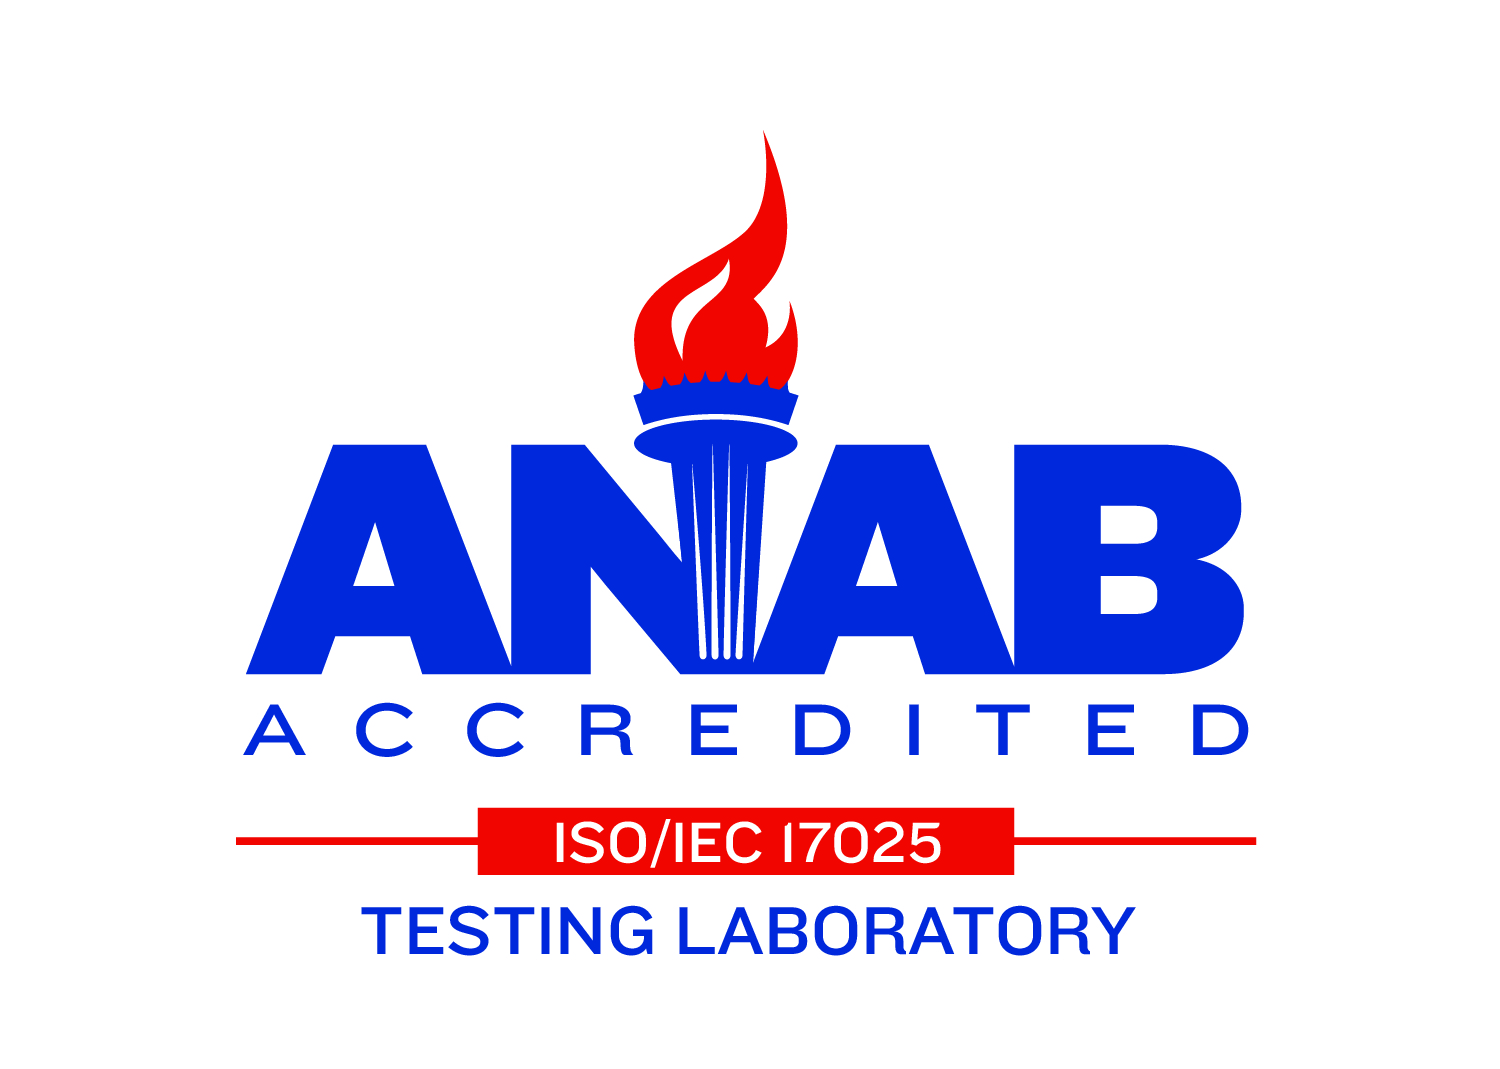 ACT is one of a select few ISO 17025 accredited labs in the industry.